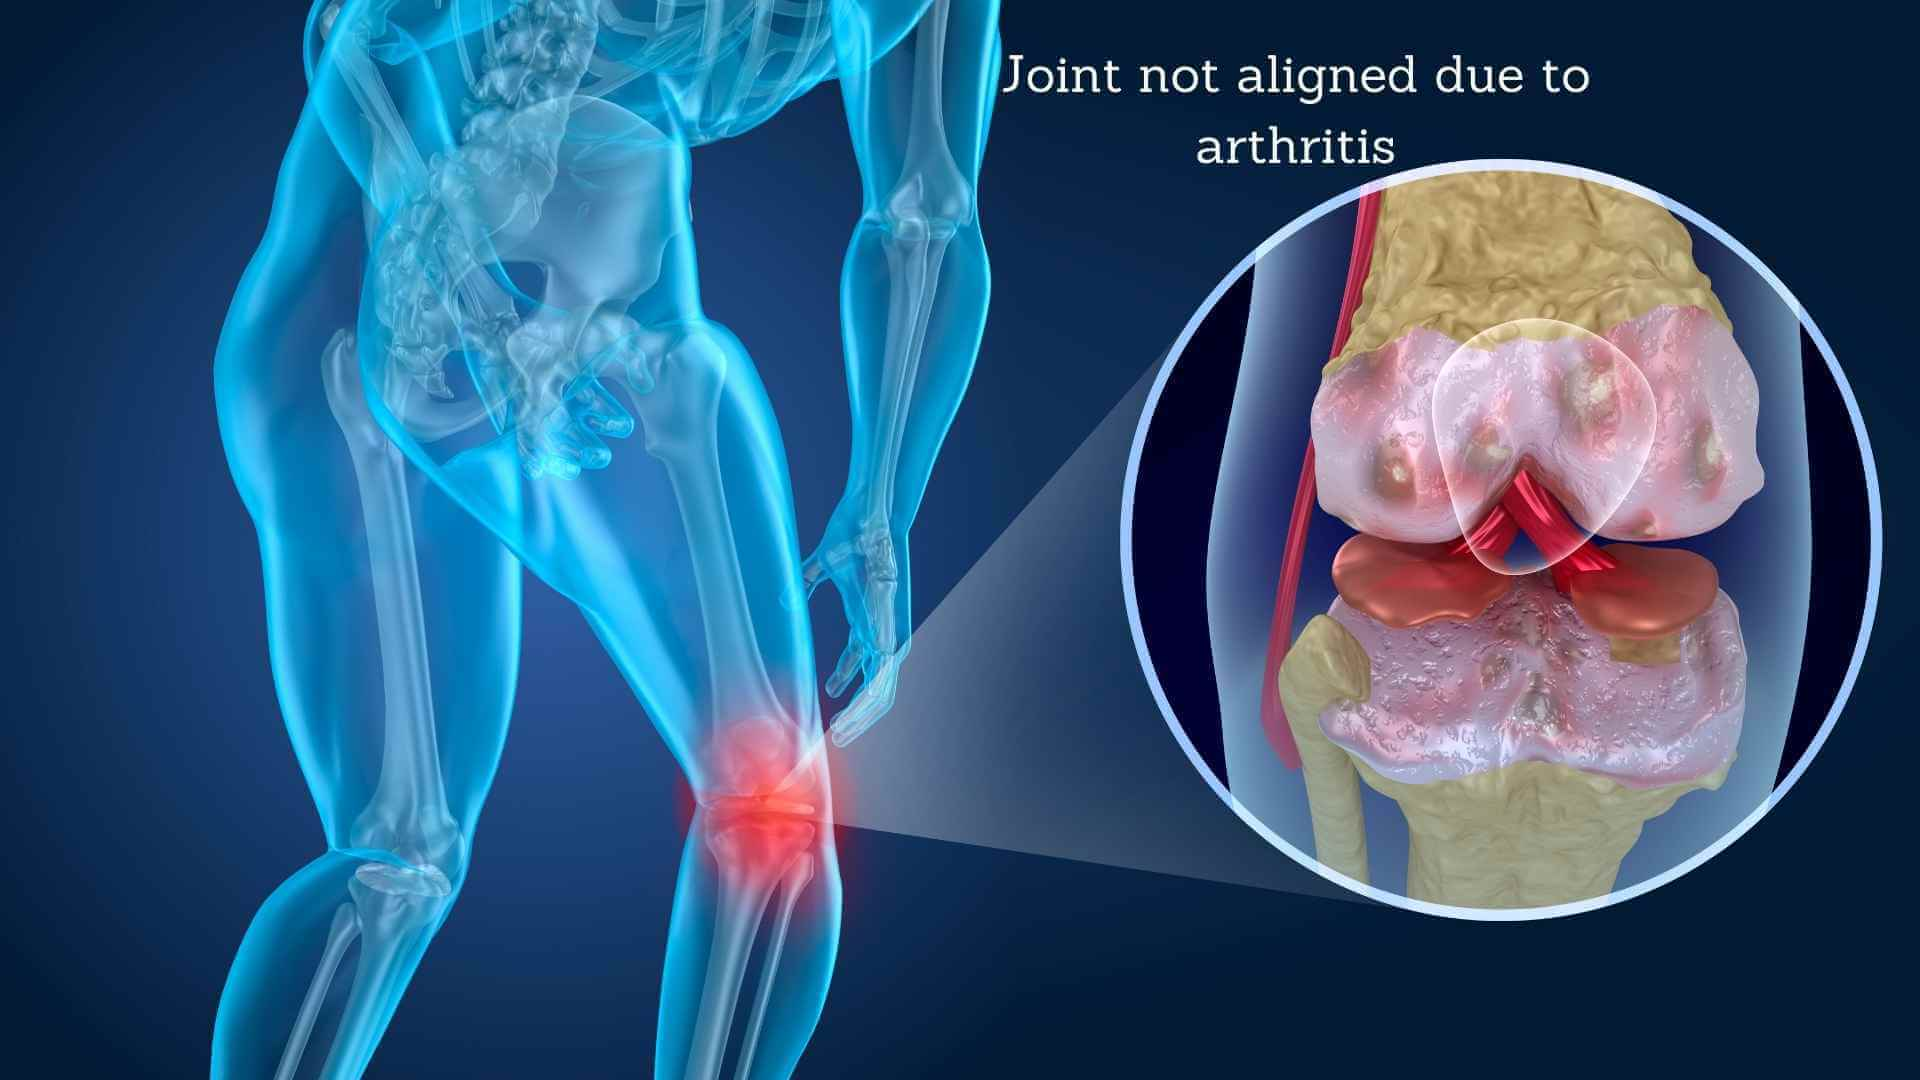 knee joint misaligned due to arthritis condition